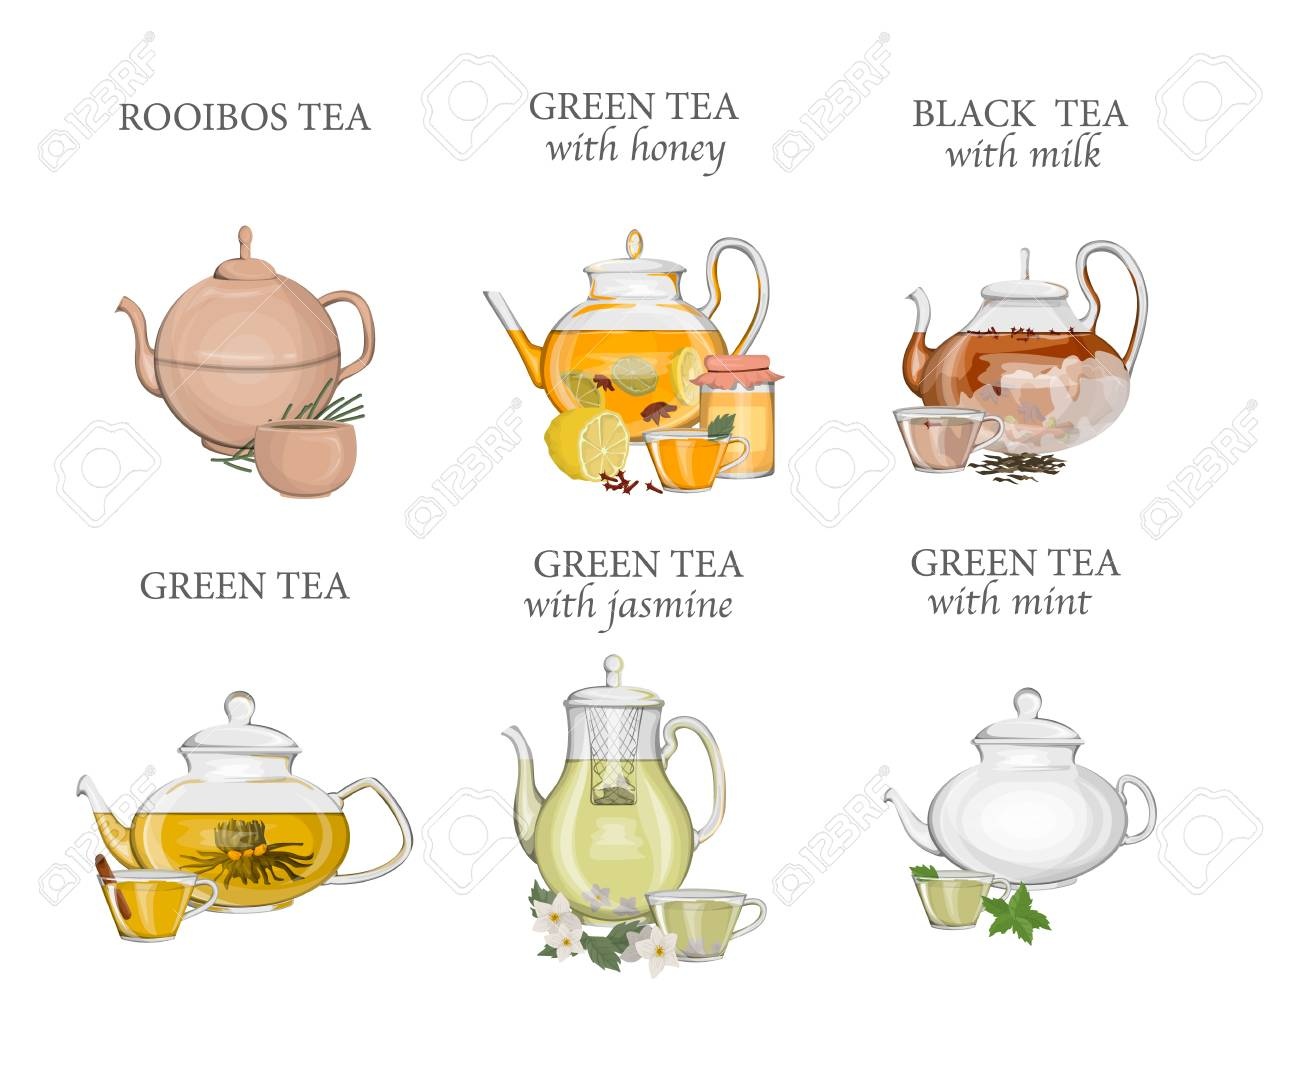 Tea types set. Kettle or teapot with hot drink and ceramic or glass cup. Green and black tea. Isolated vector illustration - 110266257